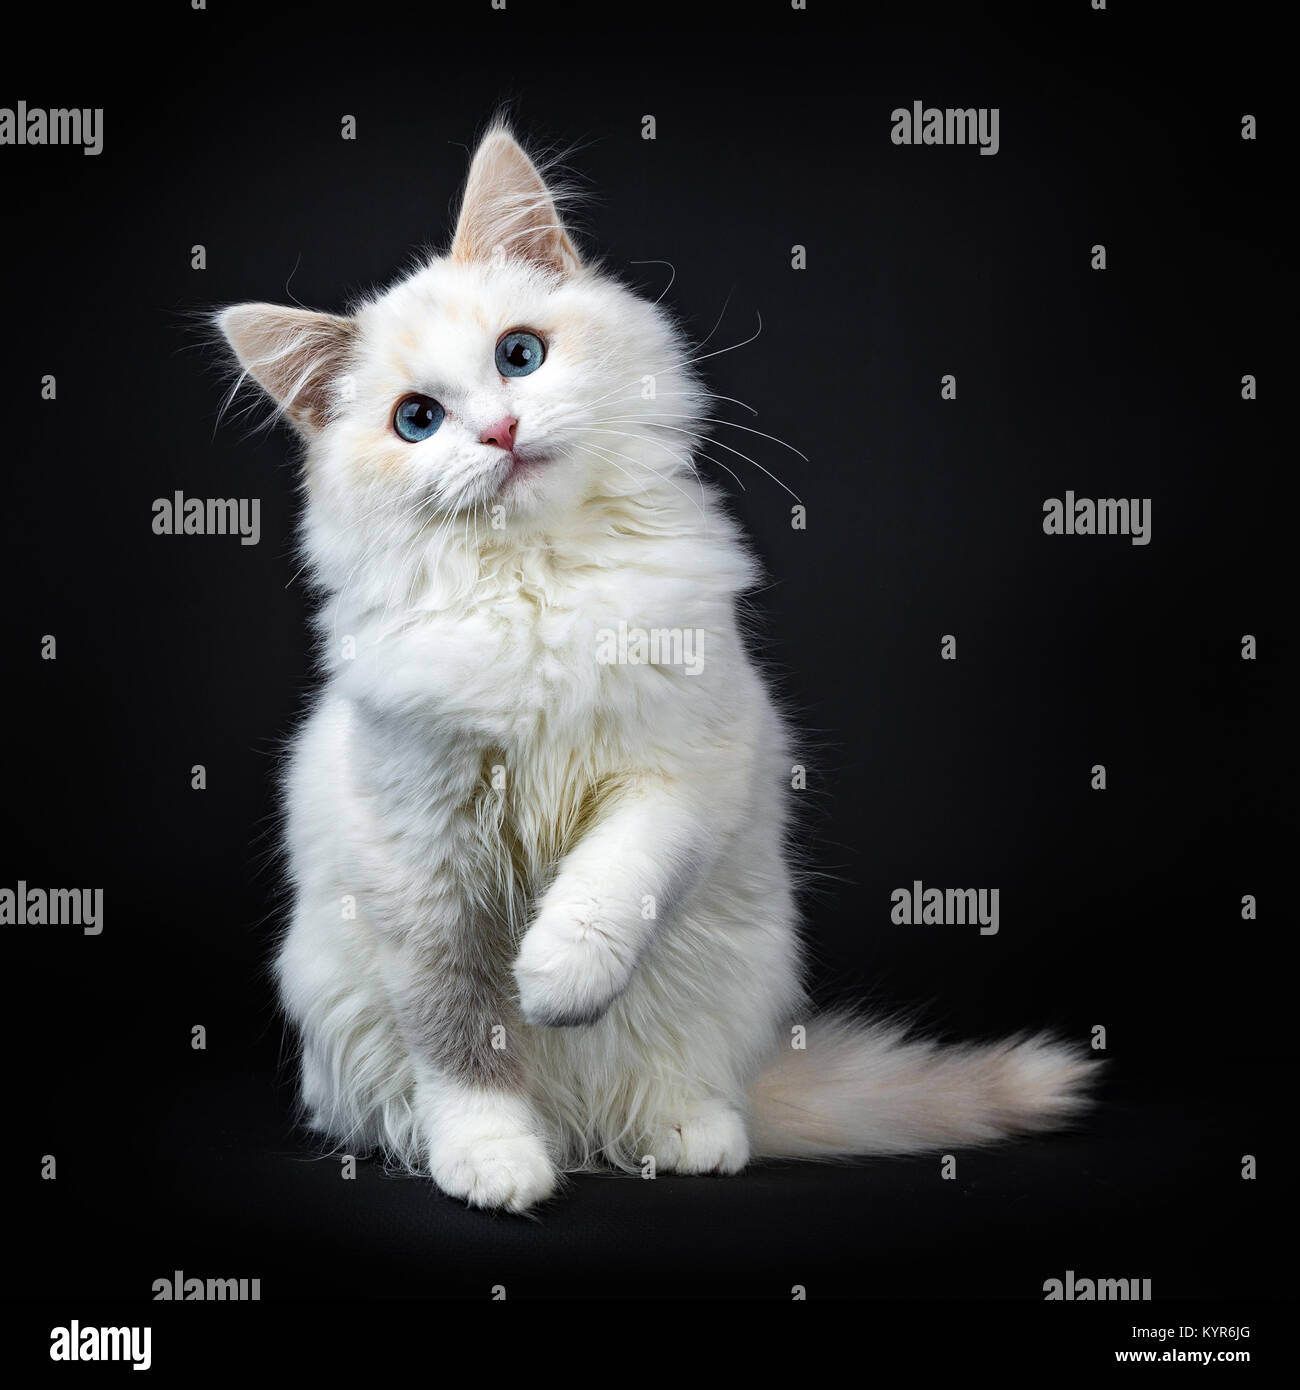 Blue eyed ragdoll cat / kitten sitting isolated on black background looking at the lens with tilted head and lifted - Stock Image